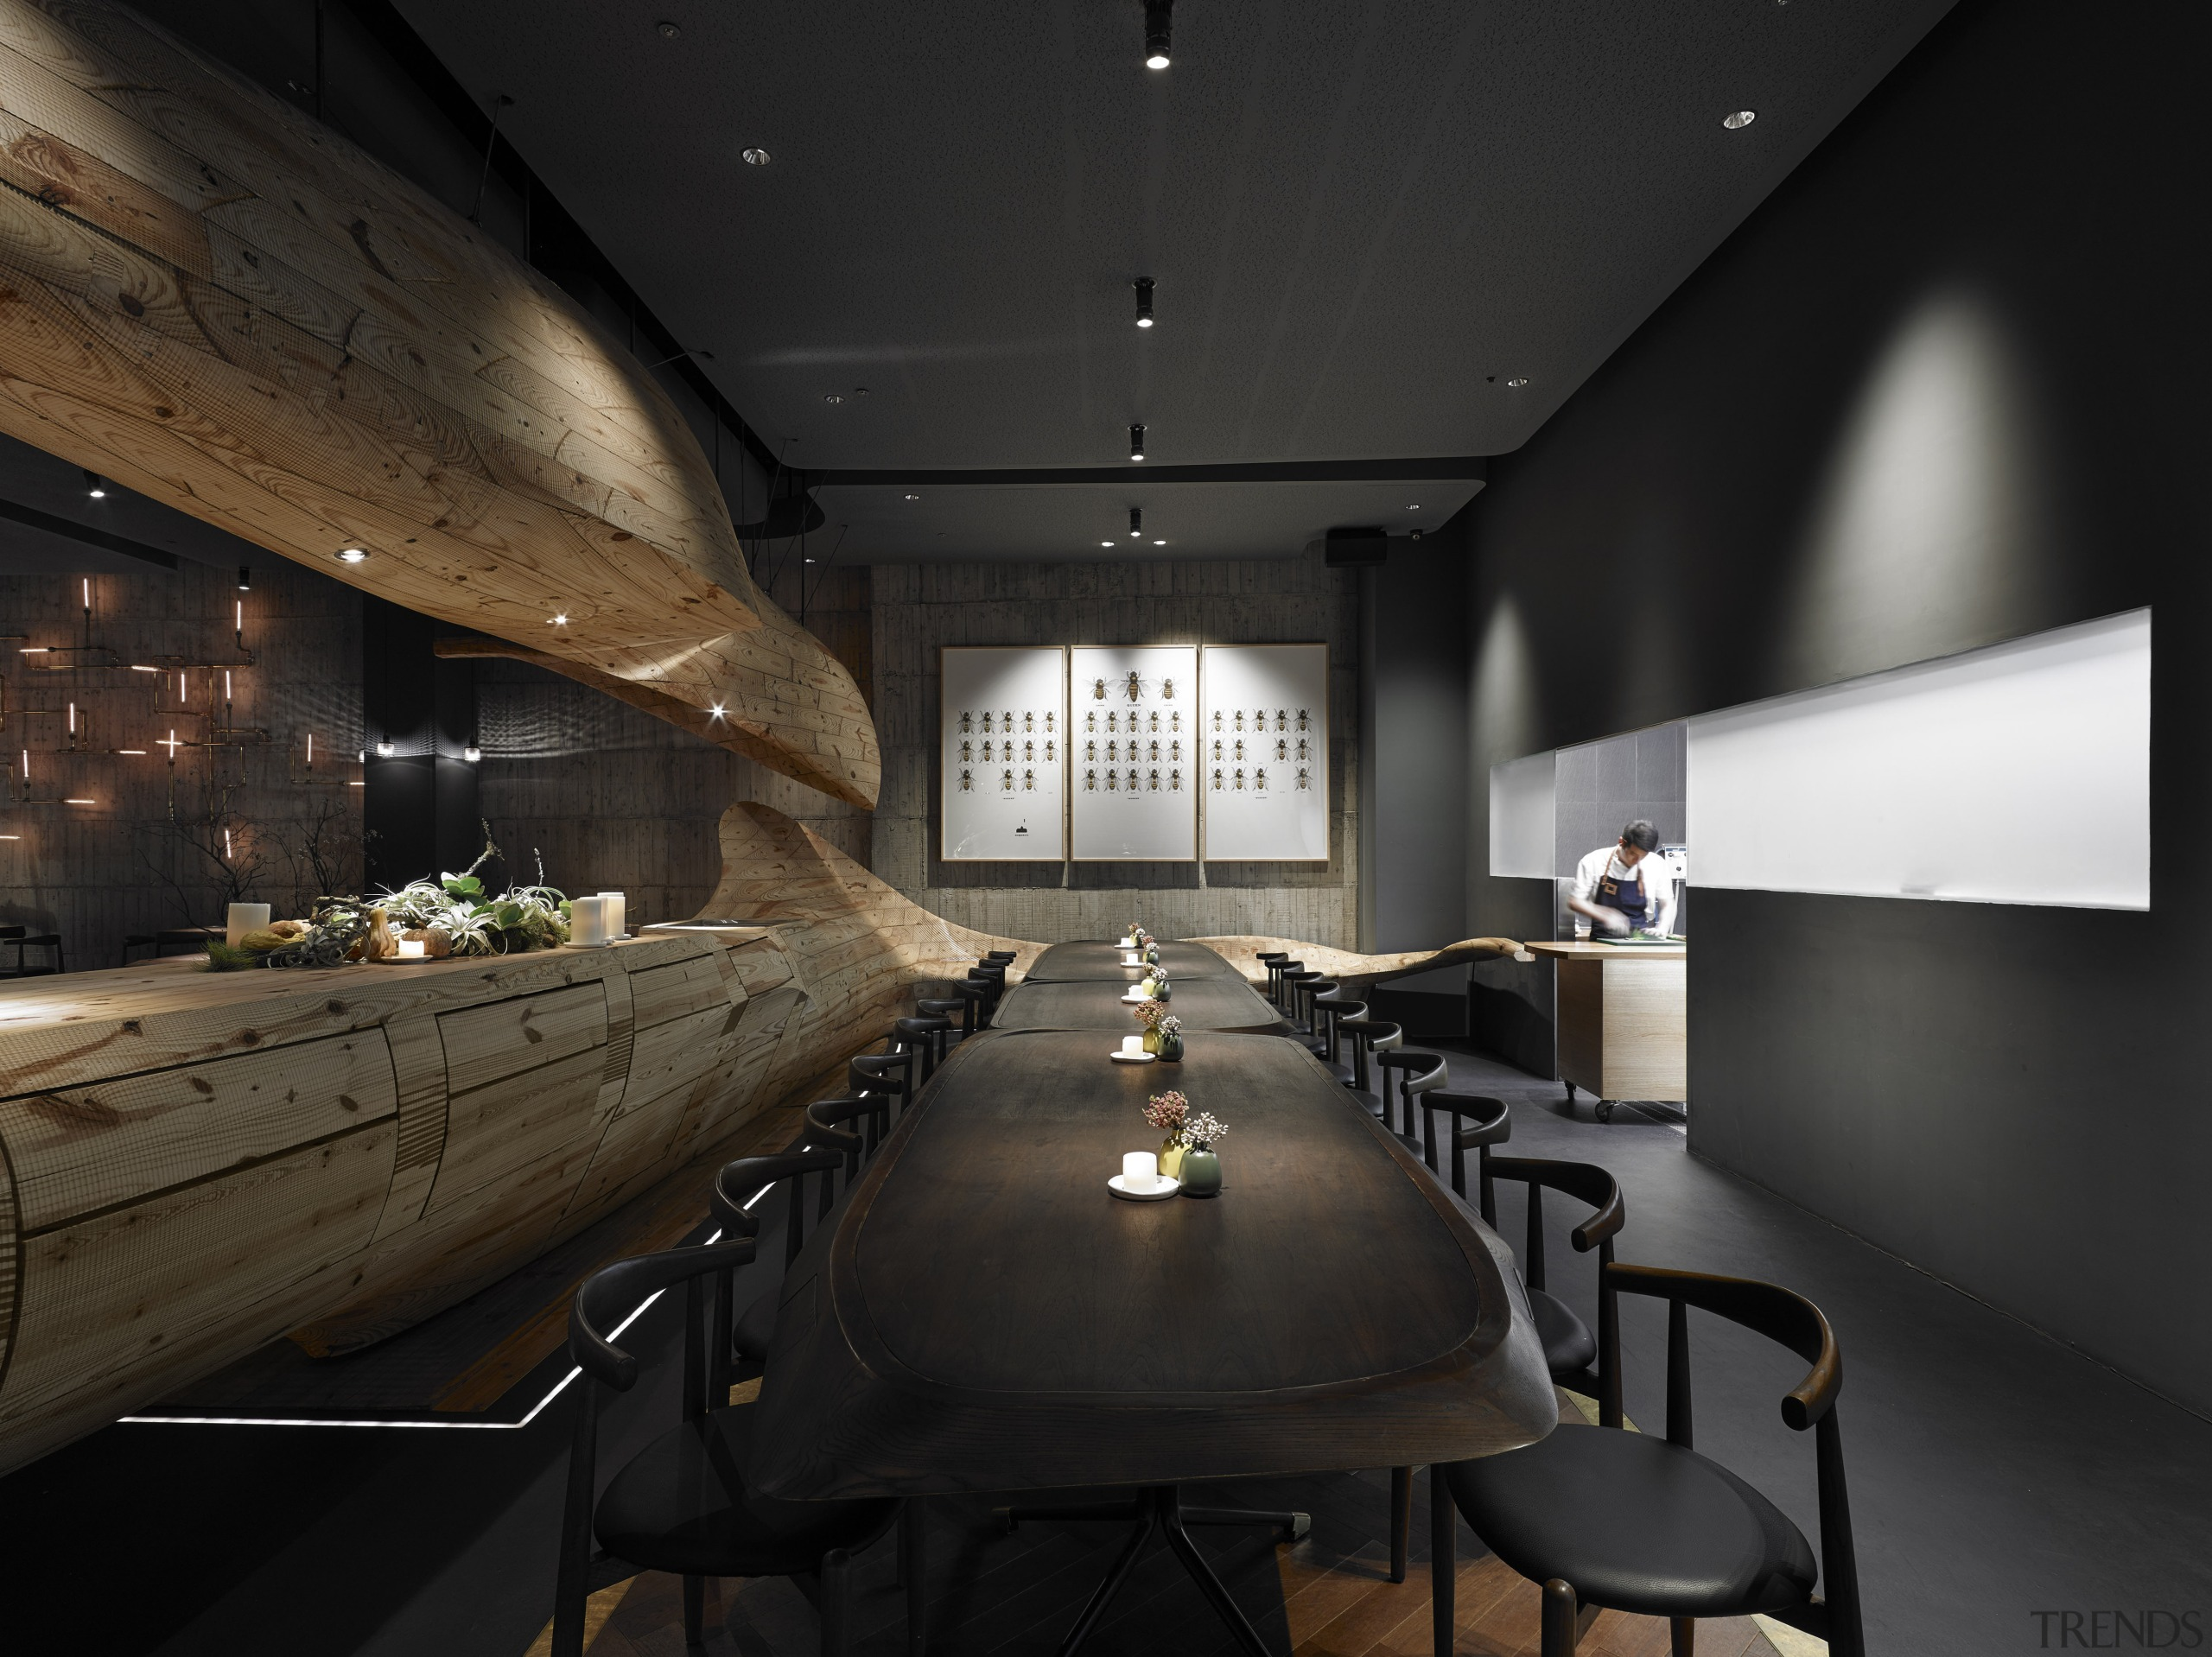 In Raw restaurant in Taipei, a large wood architecture, interior design, black